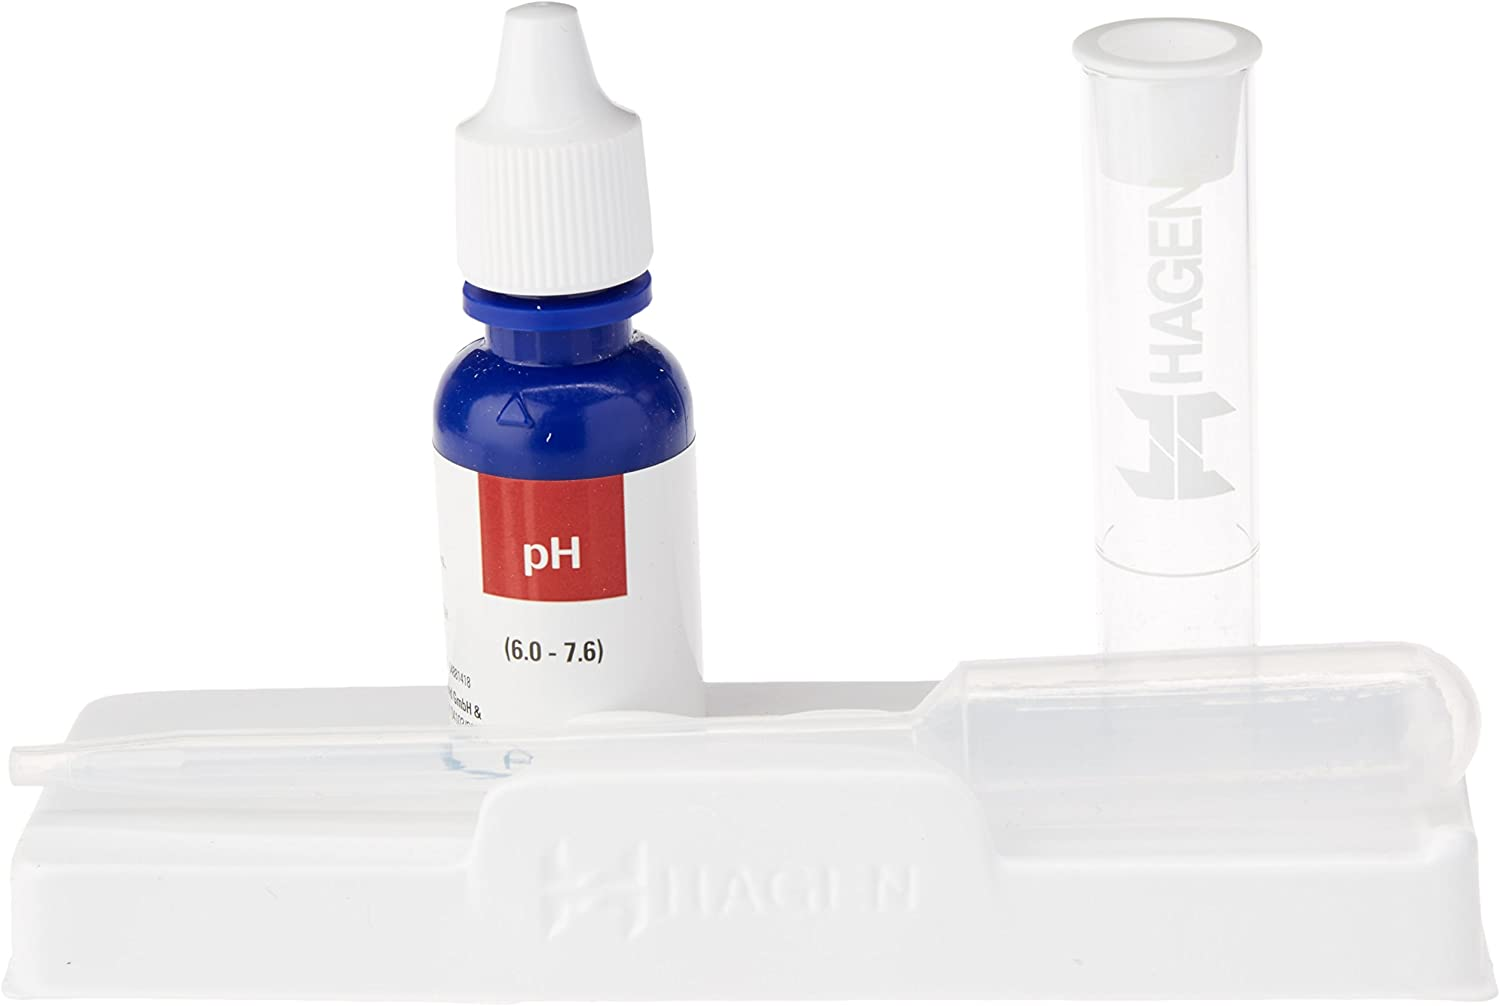 pH Low Range 6.0-7.6 for Freshwater, 225-Tests